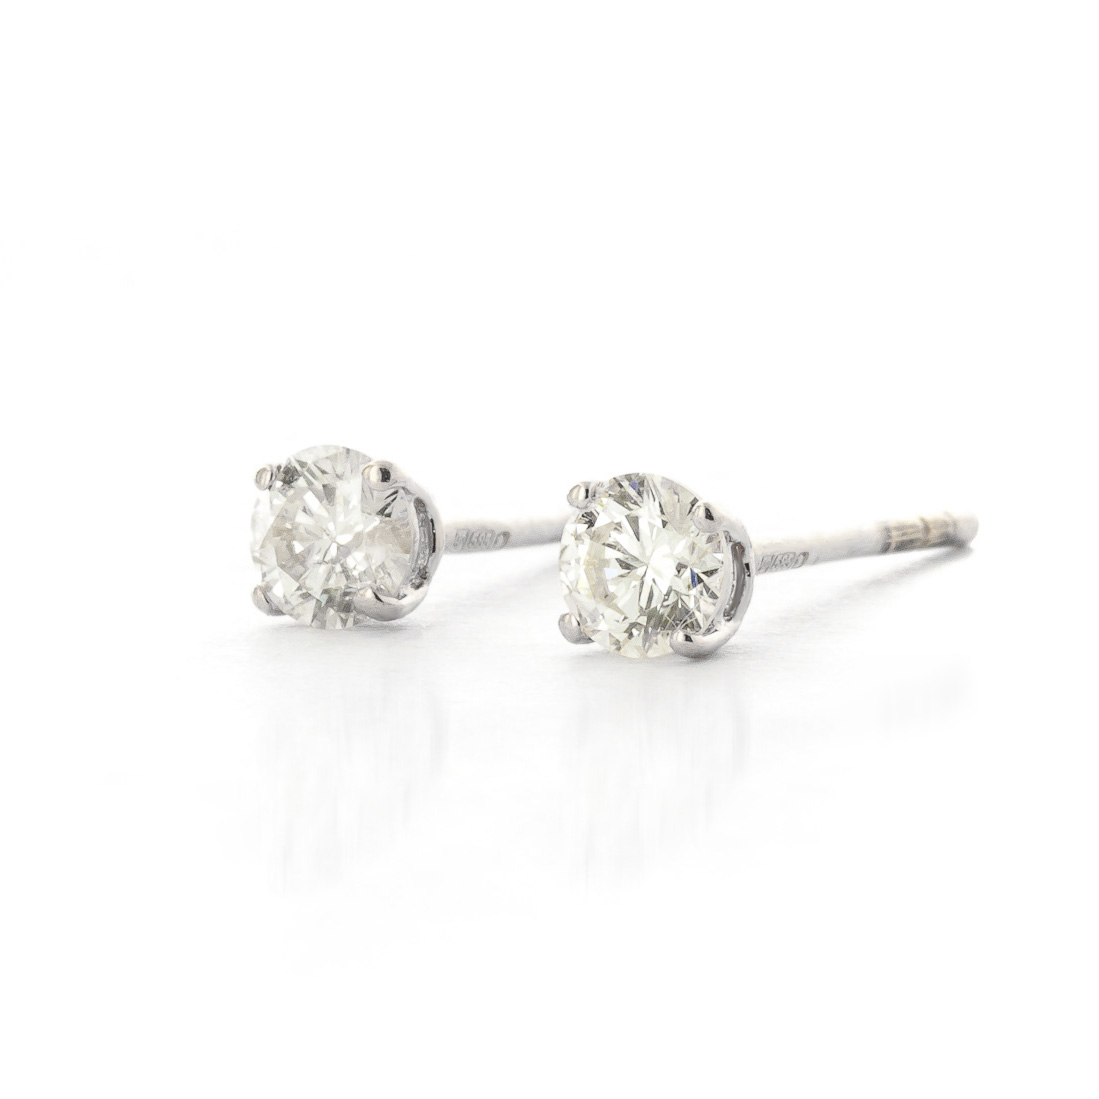 Diamond Stud Earrings in 9ct White Gold - 2278W | QP Jewellers